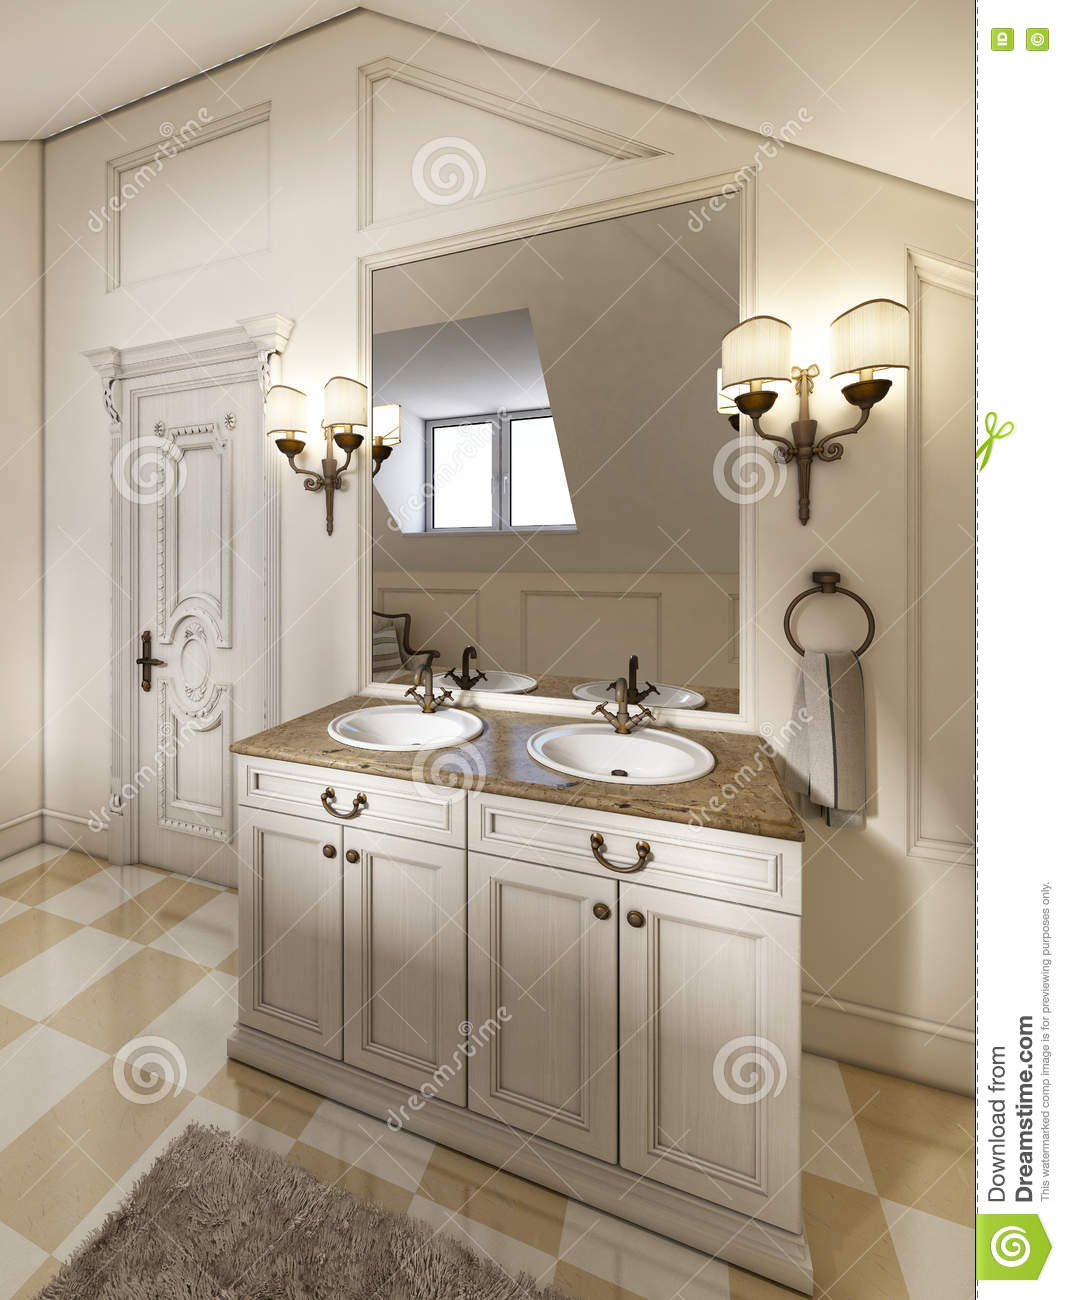 White bath sink with large mirror and sconces on the sides of th stock illustration for Pictures of bathrooms with double sinks